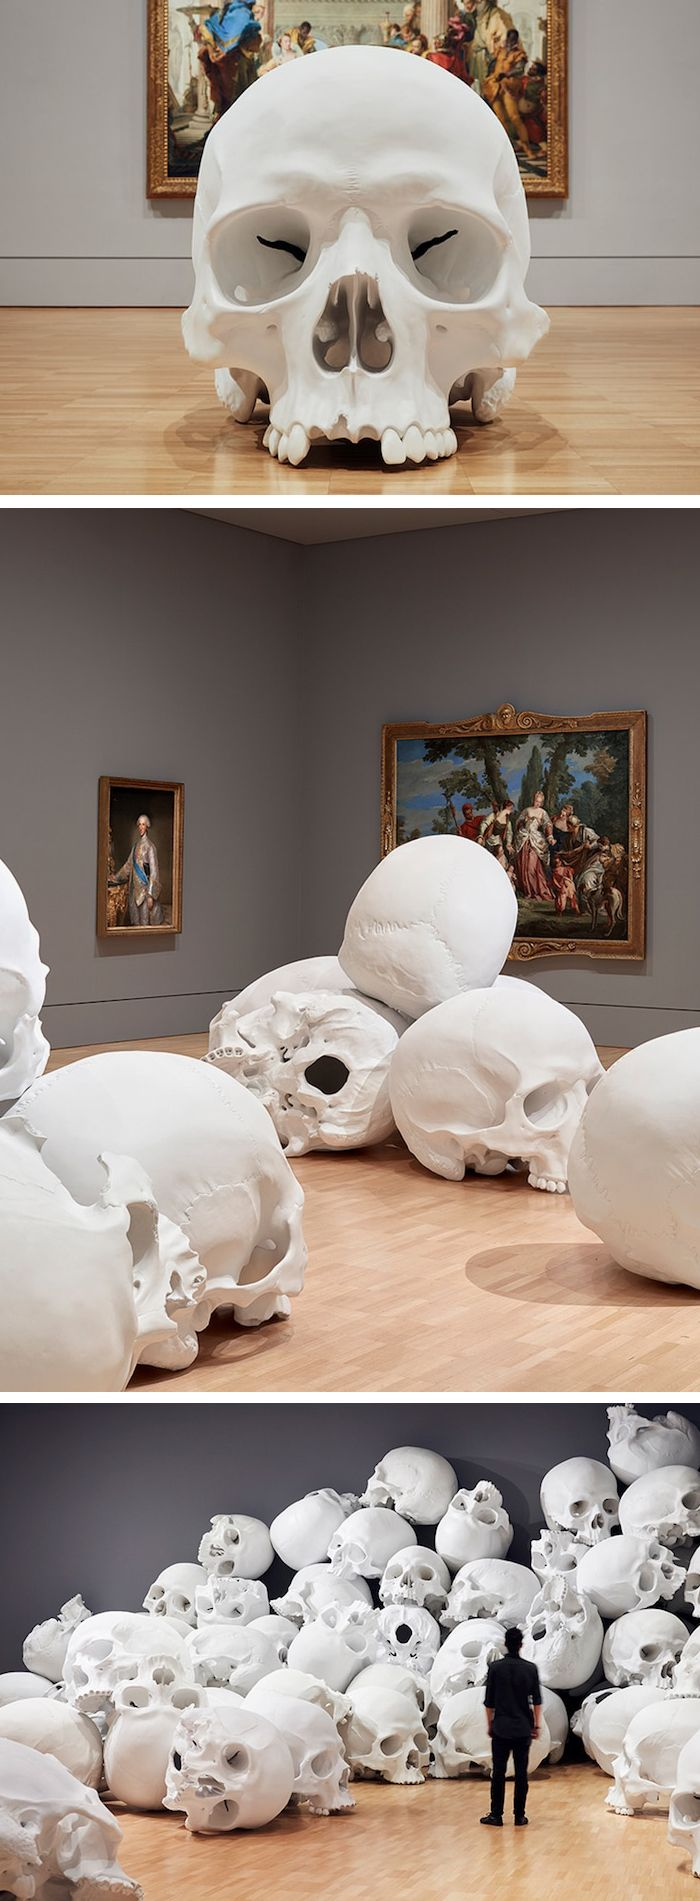 Artist Ron Mueck has unveiled his largest installation called 'Mass', a collection of 100 monumental hand-cast skulls.